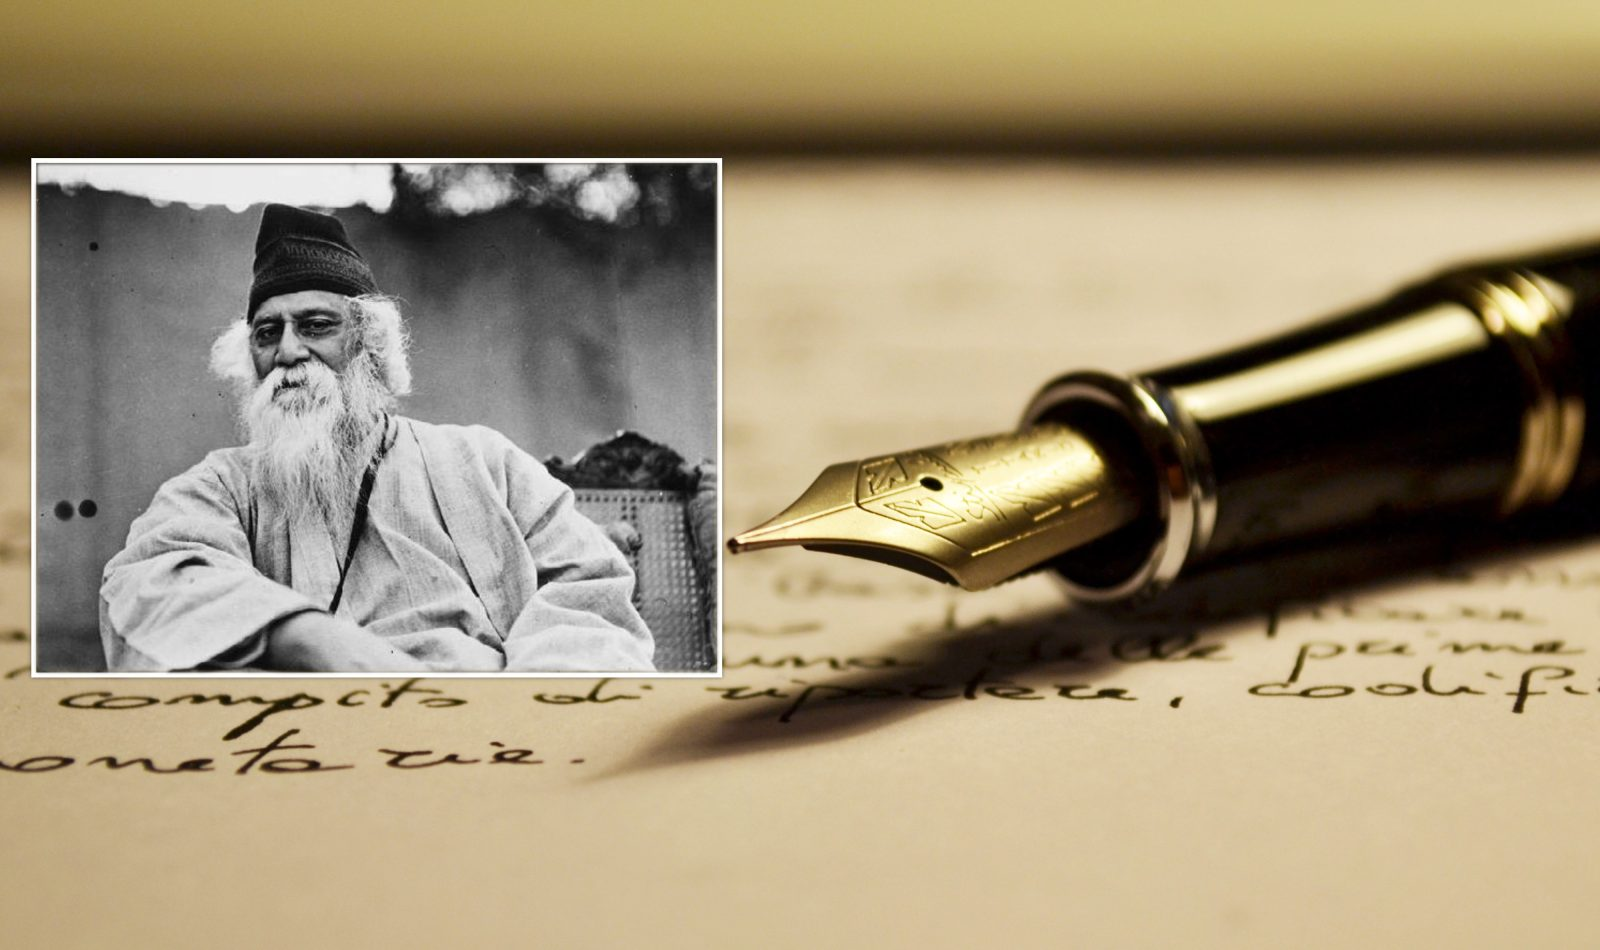 Irabotee.com,irabotee,sounak dutta,ইরাবতী.কম,copy righted by irabotee.com,sourindranath-mukhopadhyay-and-the-lost-fountain-pen-of-rabindranath-thakur/